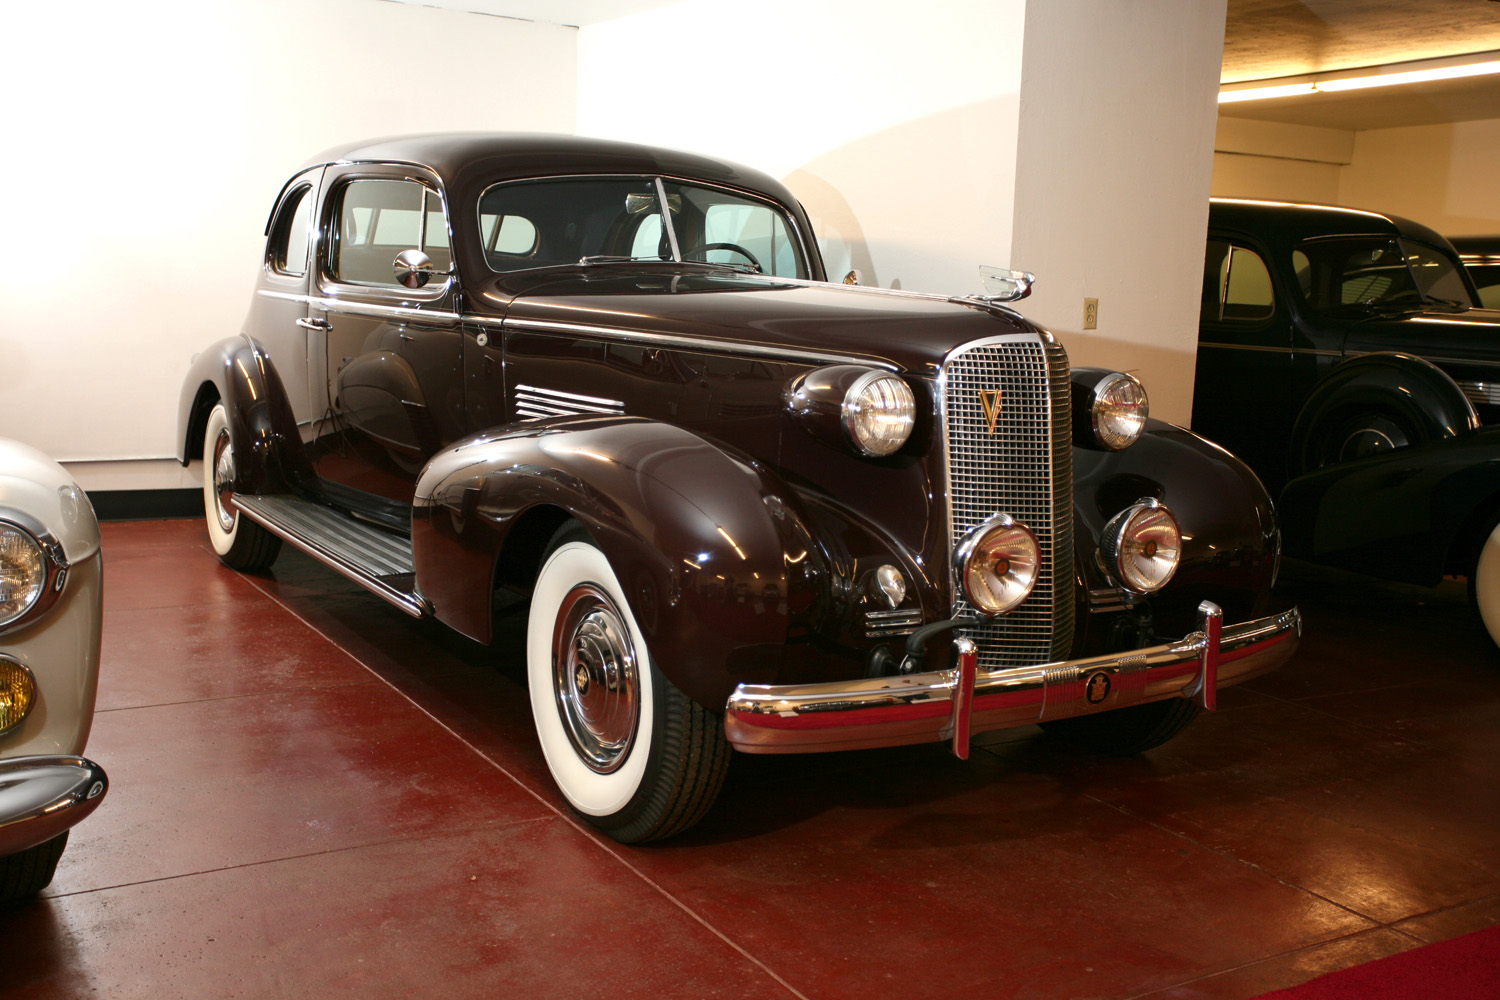 1937 Cadillac V12 Series 85 Custom Coupe